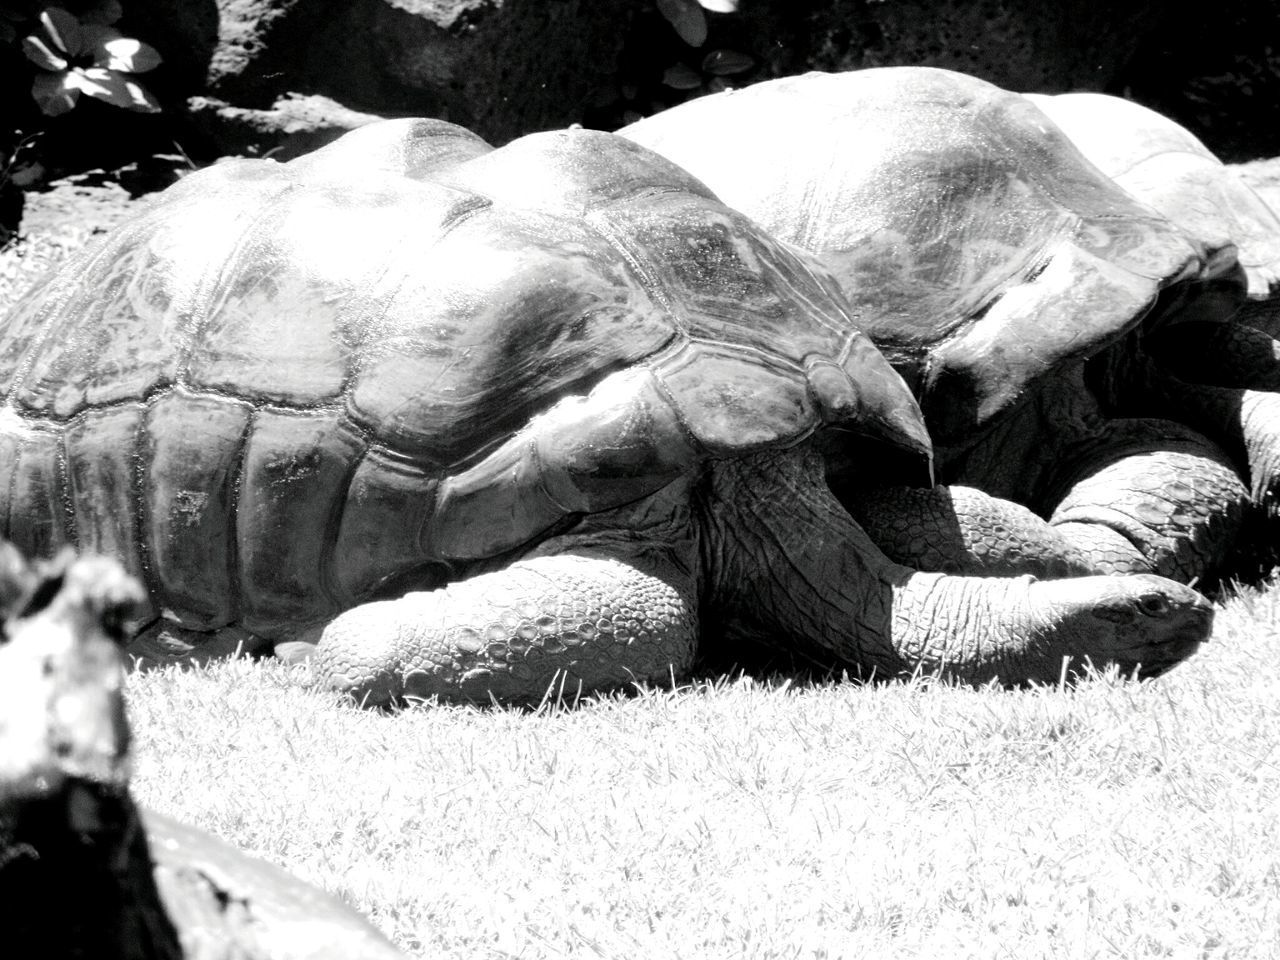 Reptile Animal Themes Tortoise Tortoise Shell Animals In The Wild One Animal Close-up Grass Nature Zoo Animals  Reptile Photography Reptiles Of Eyeem Reptile Collection Backgrounds Sunlight Grazing Black And White Photography Black And White Collection  Reptile Animals In The Wild Giant Tortoise Honolulu Zoo Aldabra Giant Tortoise